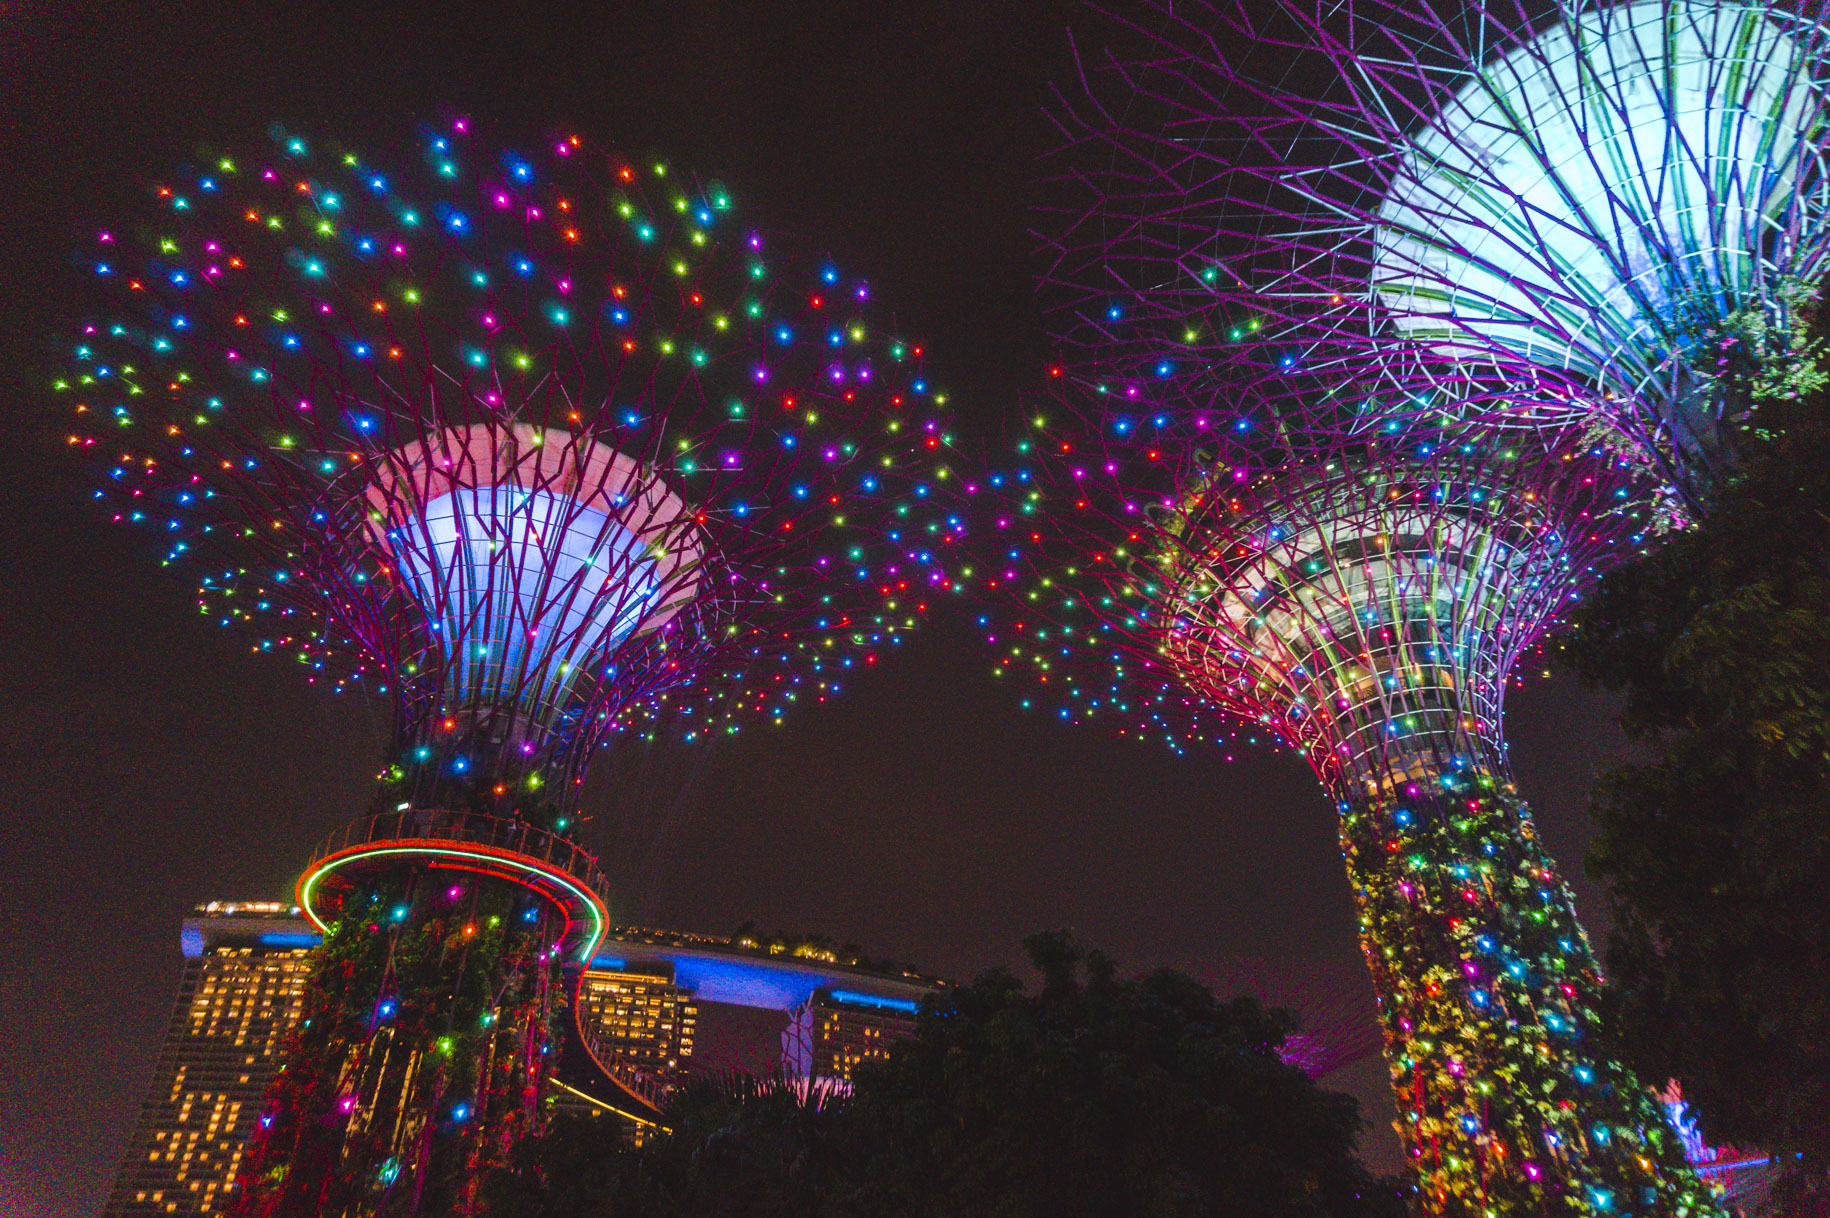 Singapore photos: Multi-coloured Supertree Grove at night in Gardens by the Bay is one of the best things to do in Singapore.